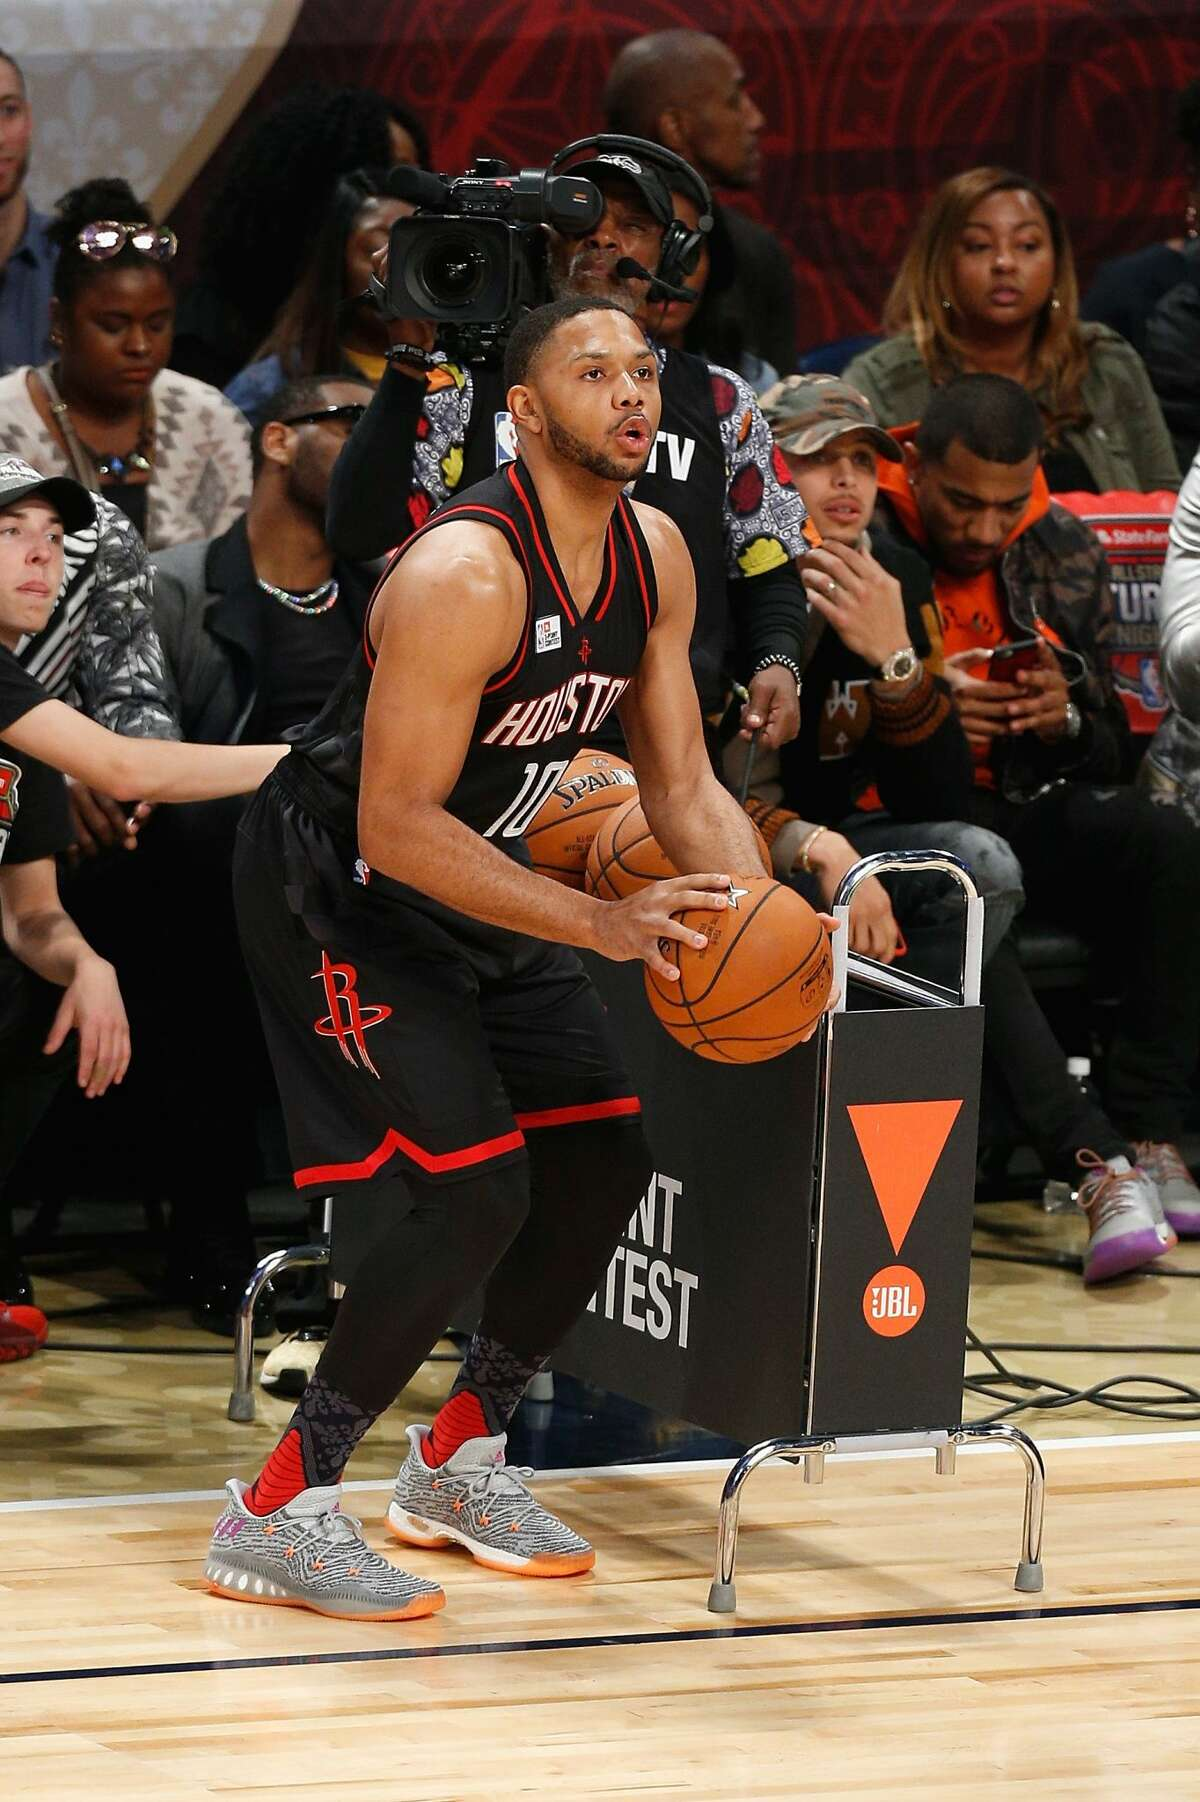 NEW ORLEANS, LA - FEBRUARY 18: Eric Gordon #10 of the Houston Rockets competes in the 2017 JBL Three-Point Contest at Smoothie King Center on February 18, 2017 in New Orleans, Louisiana. NOTE TO USER: User expressly acknowledges and agrees that, by downloading and/or using this photograph, user is consenting to the terms and conditions of the Getty Images License Agreement. (Photo by Jonathan Bachman/Getty Images)